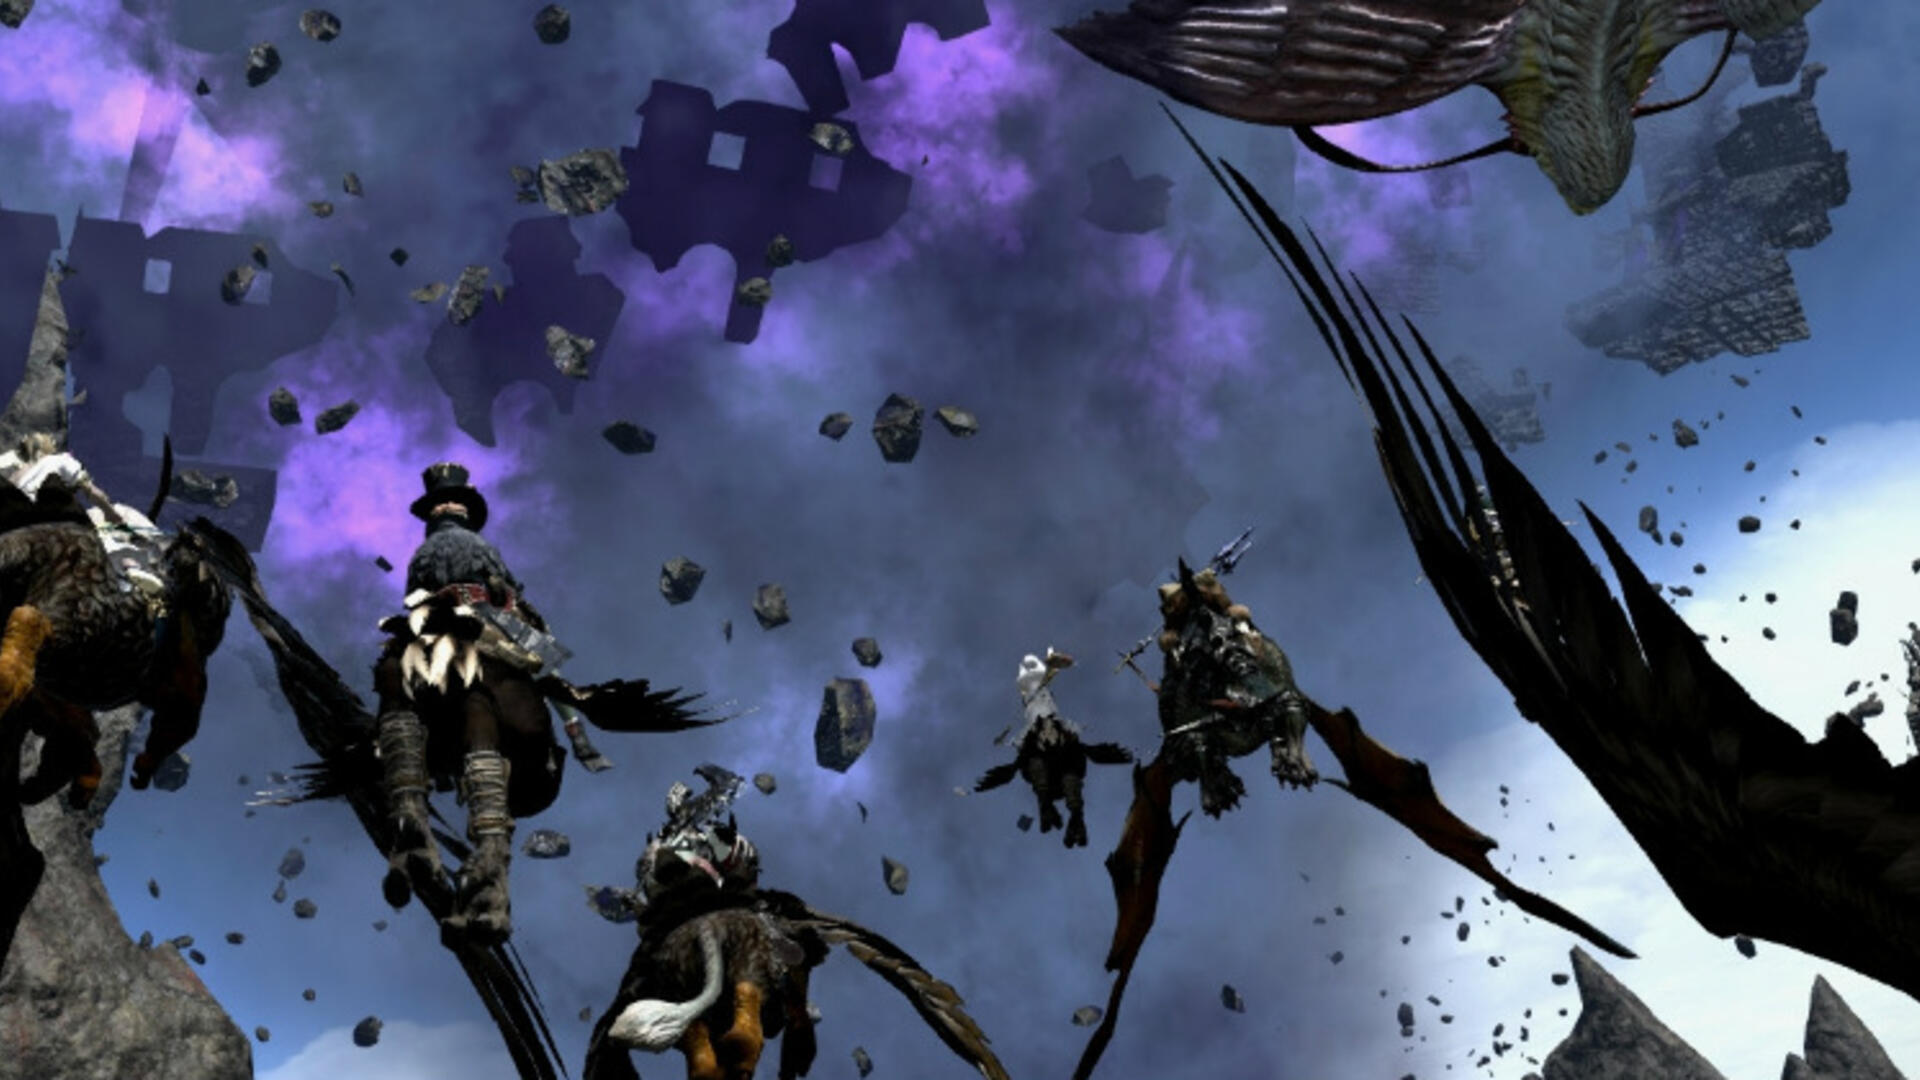 Final Fantasy XIV Heavensward PC Review: Onward and Upward